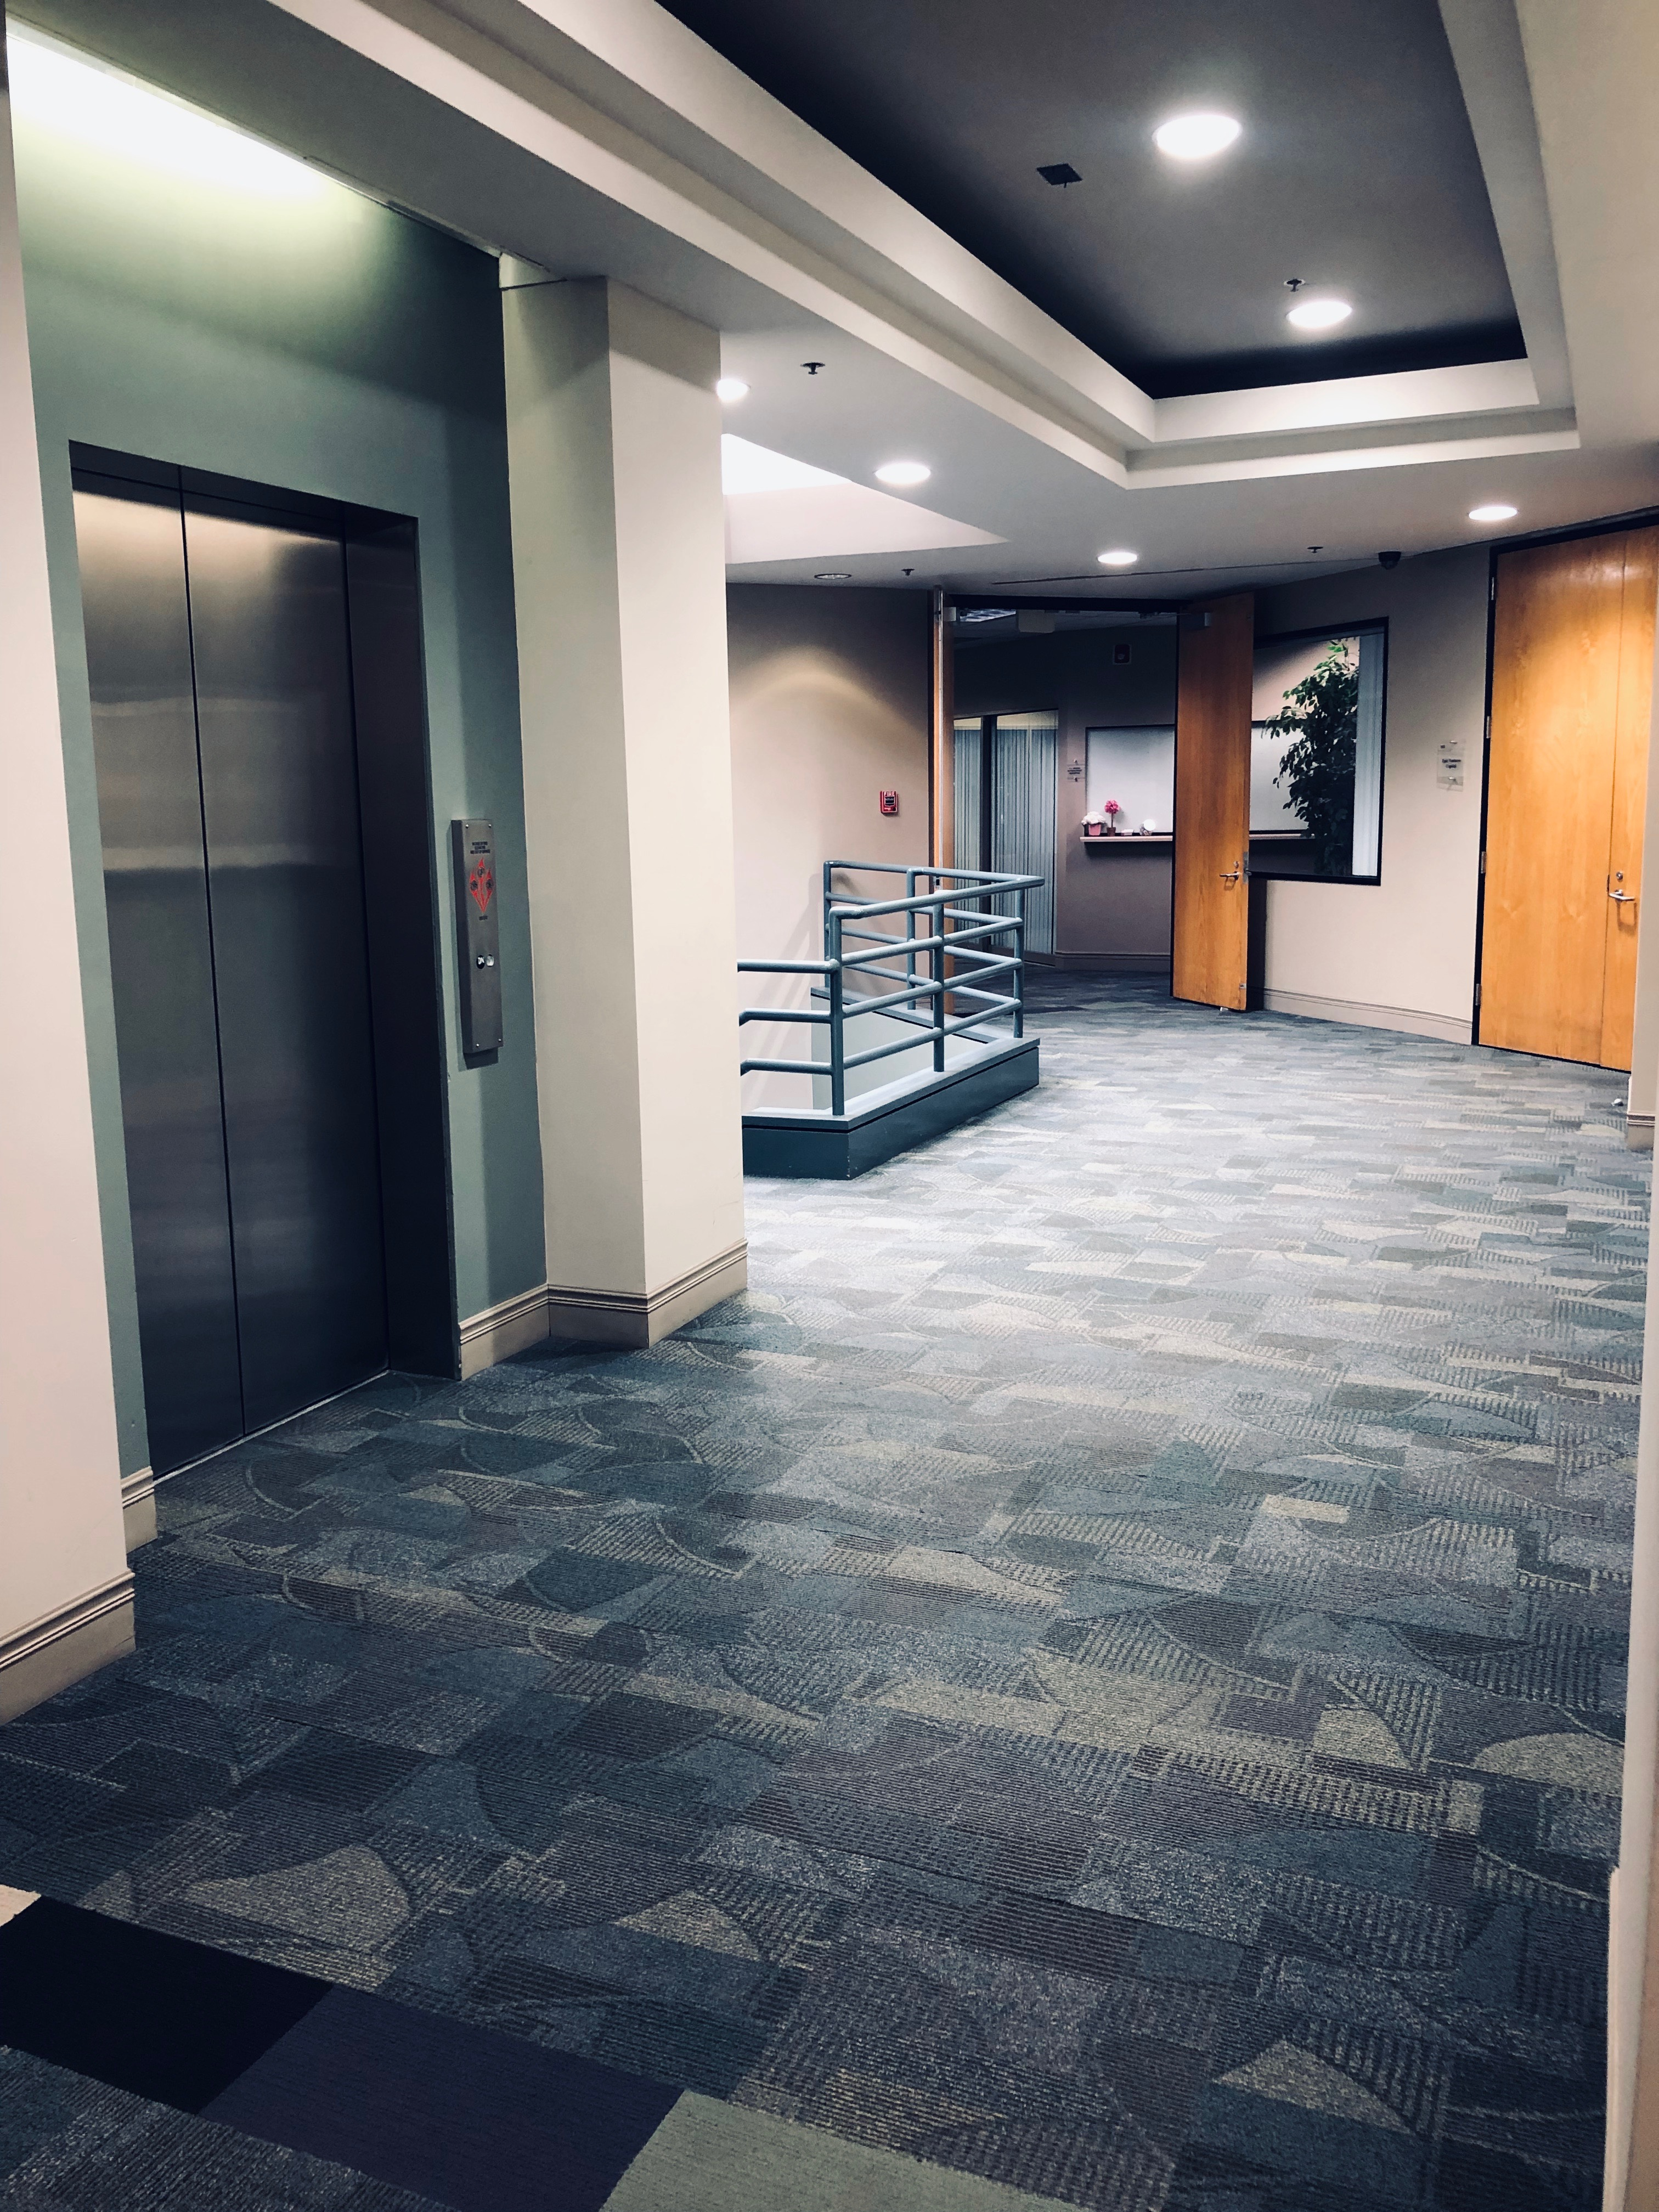 2nd Floor Access - Elevator